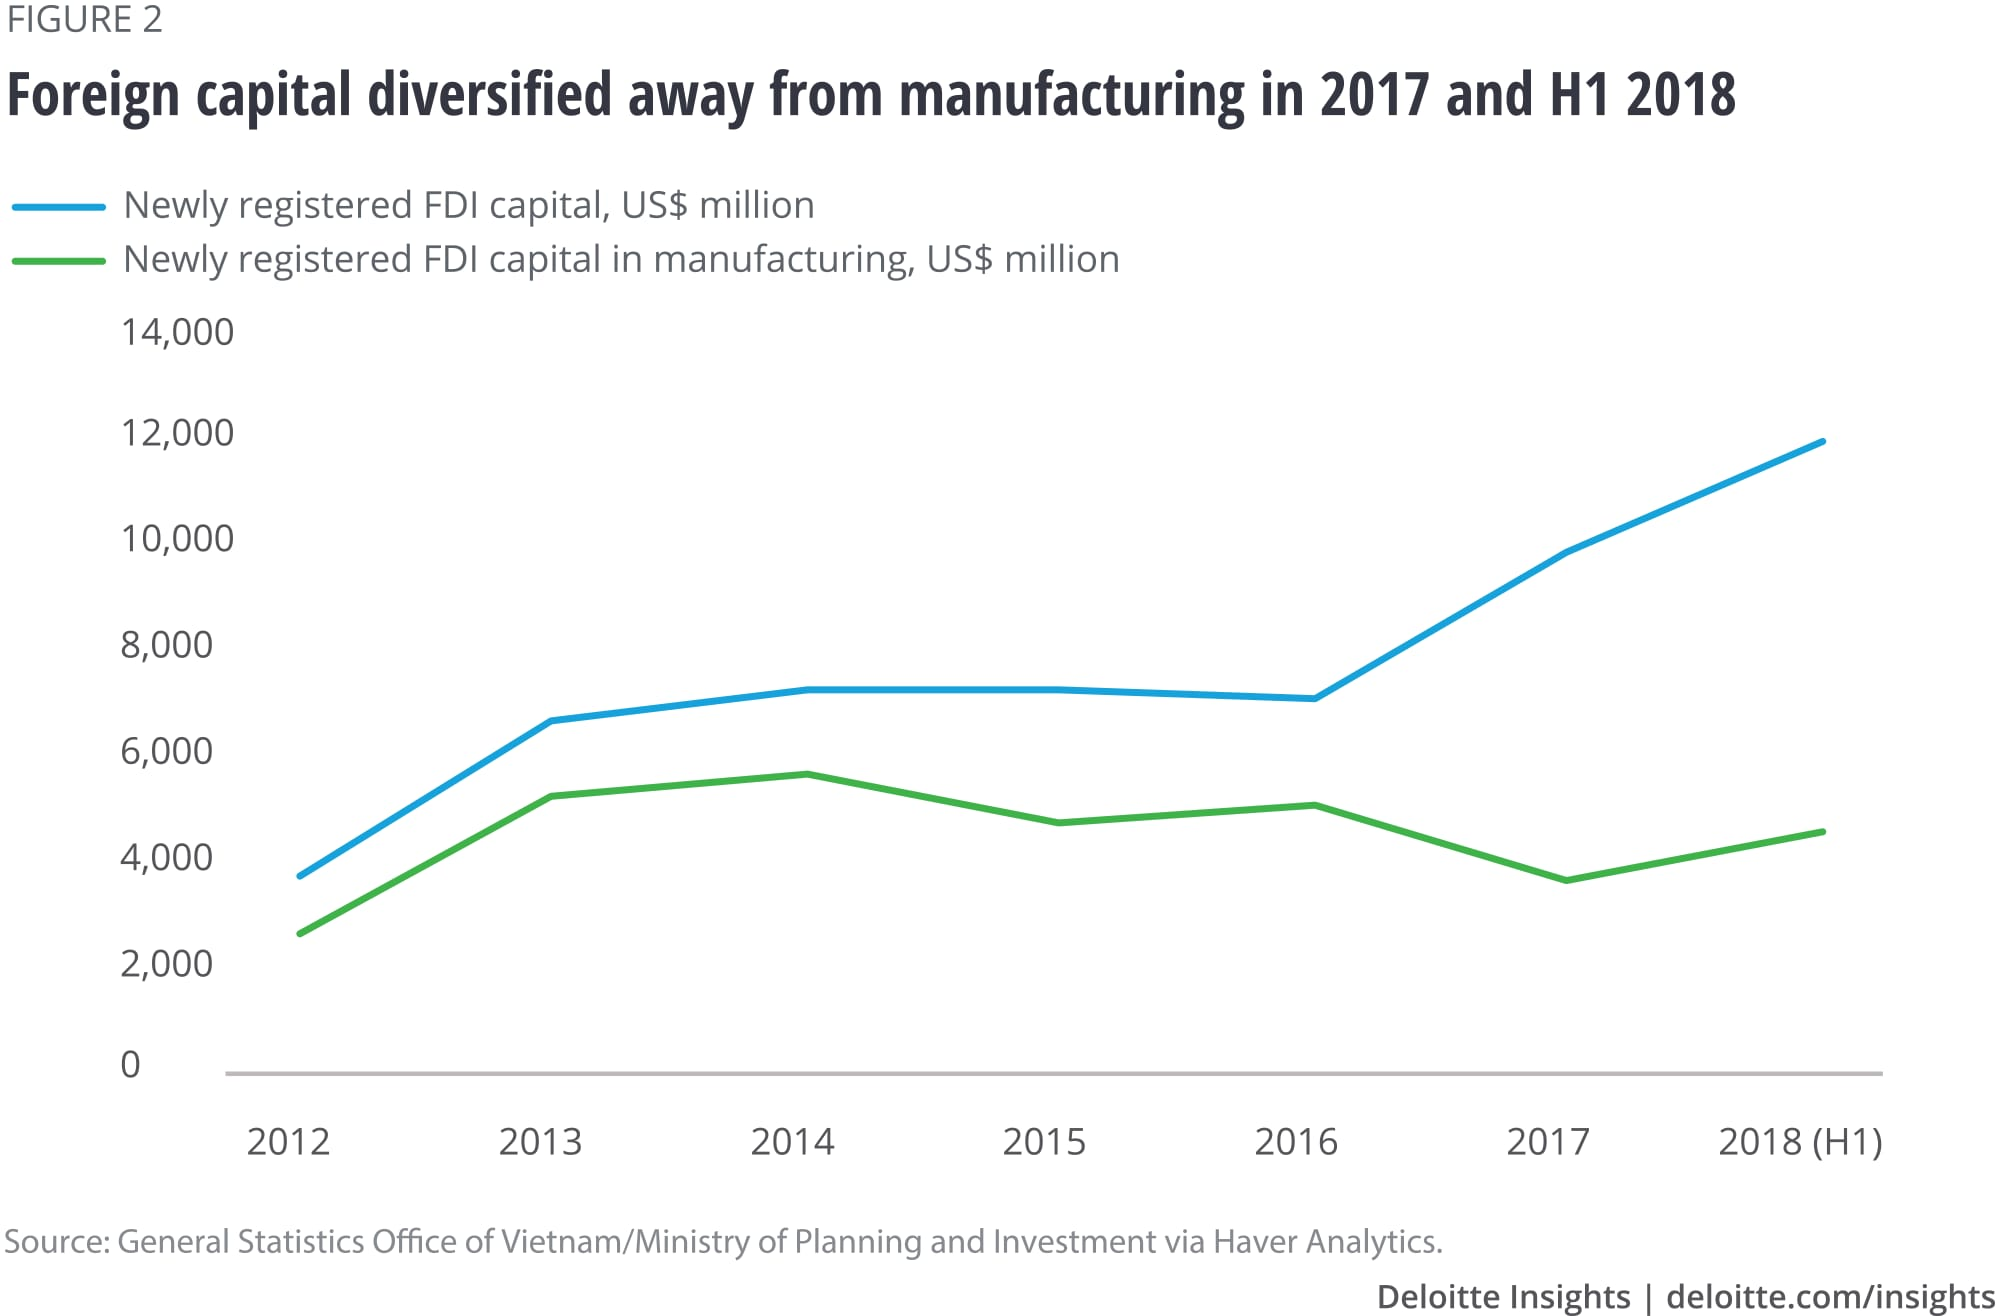 Foreign capital diversified away from manufacturing in 2017 and H1 2018